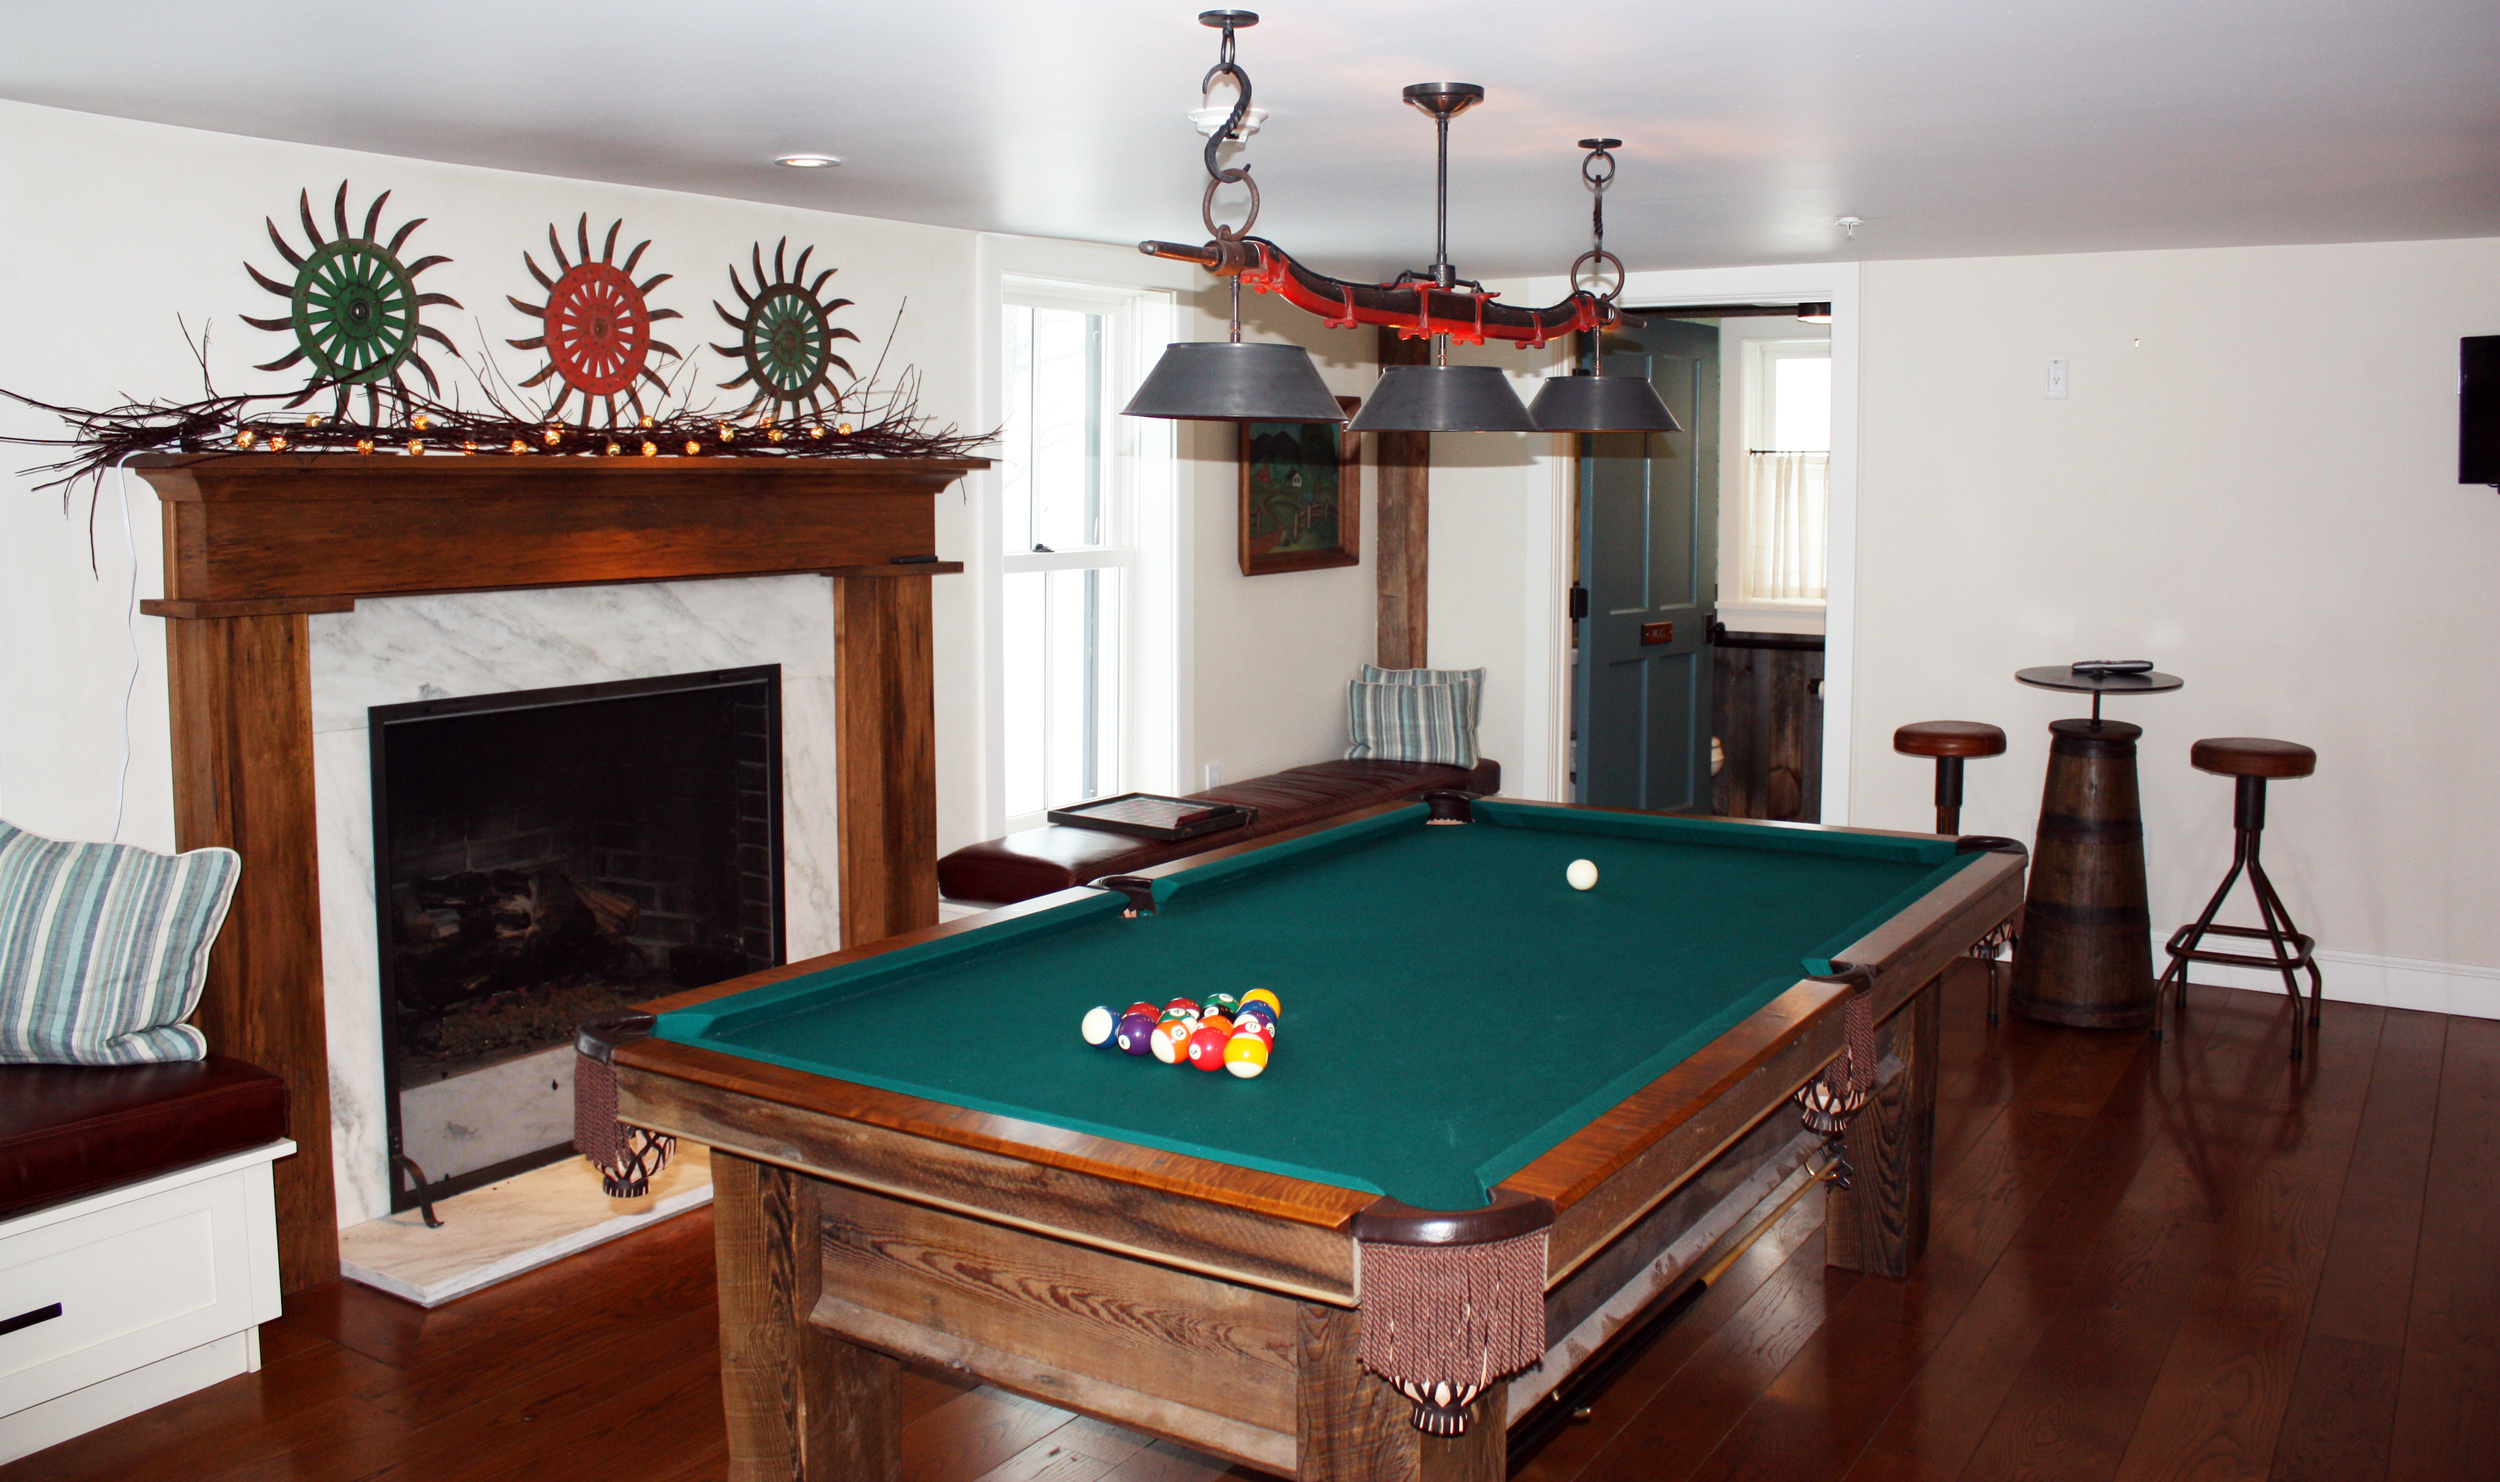 pool table living room hill farm inn sunderland vermont travel like a local vermont. Black Bedroom Furniture Sets. Home Design Ideas